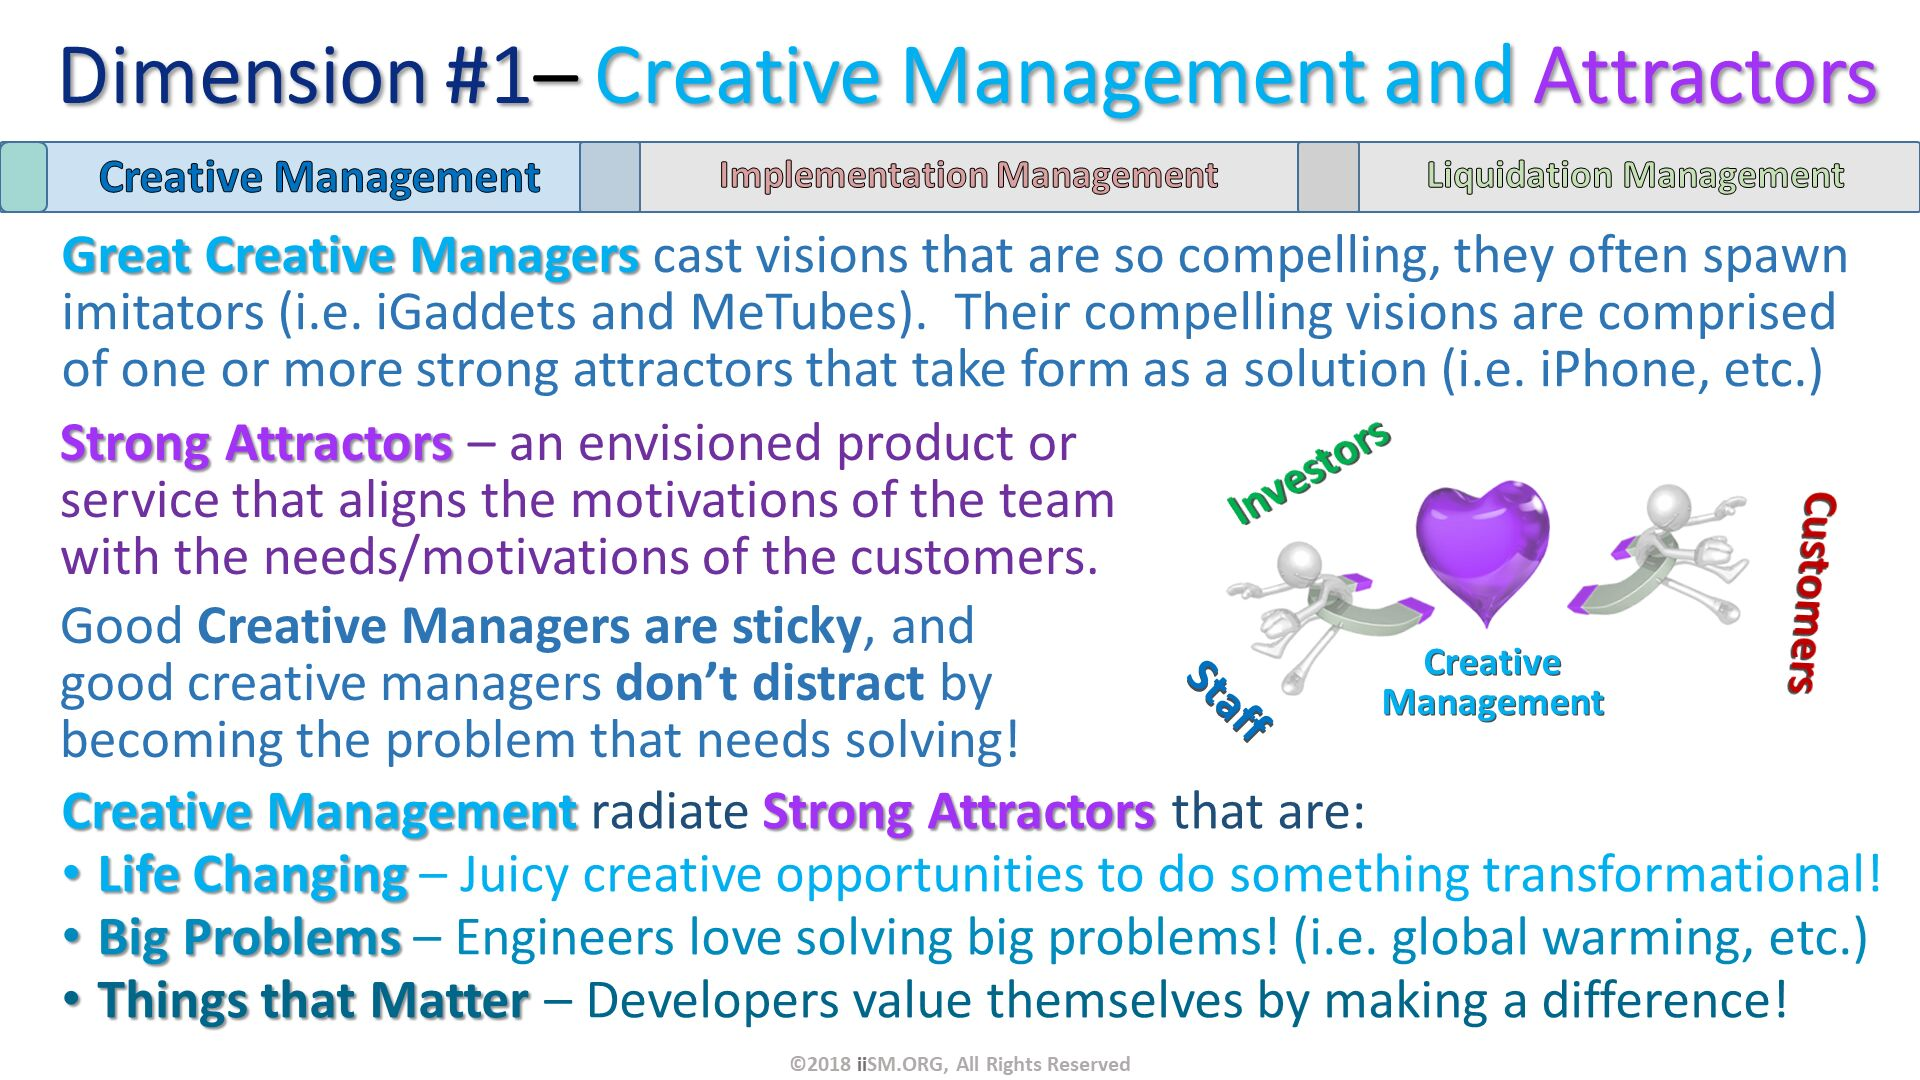 Great Creative Managers cast visions that are so compelling, they often spawn imitators (i.e. iGaddets and MeTubes).  Their compelling visions are comprised of one or more strong attractors that take form as a solution (i.e. iPhone, etc.). ©2018 iiSM.ORG, All Rights Reserved. Creative Management radiate Strong Attractors that are: Life Changing – Juicy creative opportunities to do something transformational! Big Problems – Engineers love solving big problems! (i.e. global warming, etc.) Things that Matter – Developers value themselves by making a difference! . Strong Attractors – an envisioned product or service that aligns the motivations of the team with the needs/motivations of the customers. Good Creative Managers are sticky, and good creative managers don't distract by becoming the problem that needs solving!. CreativeManagement. Dimension #1– Creative Management and Attractors.